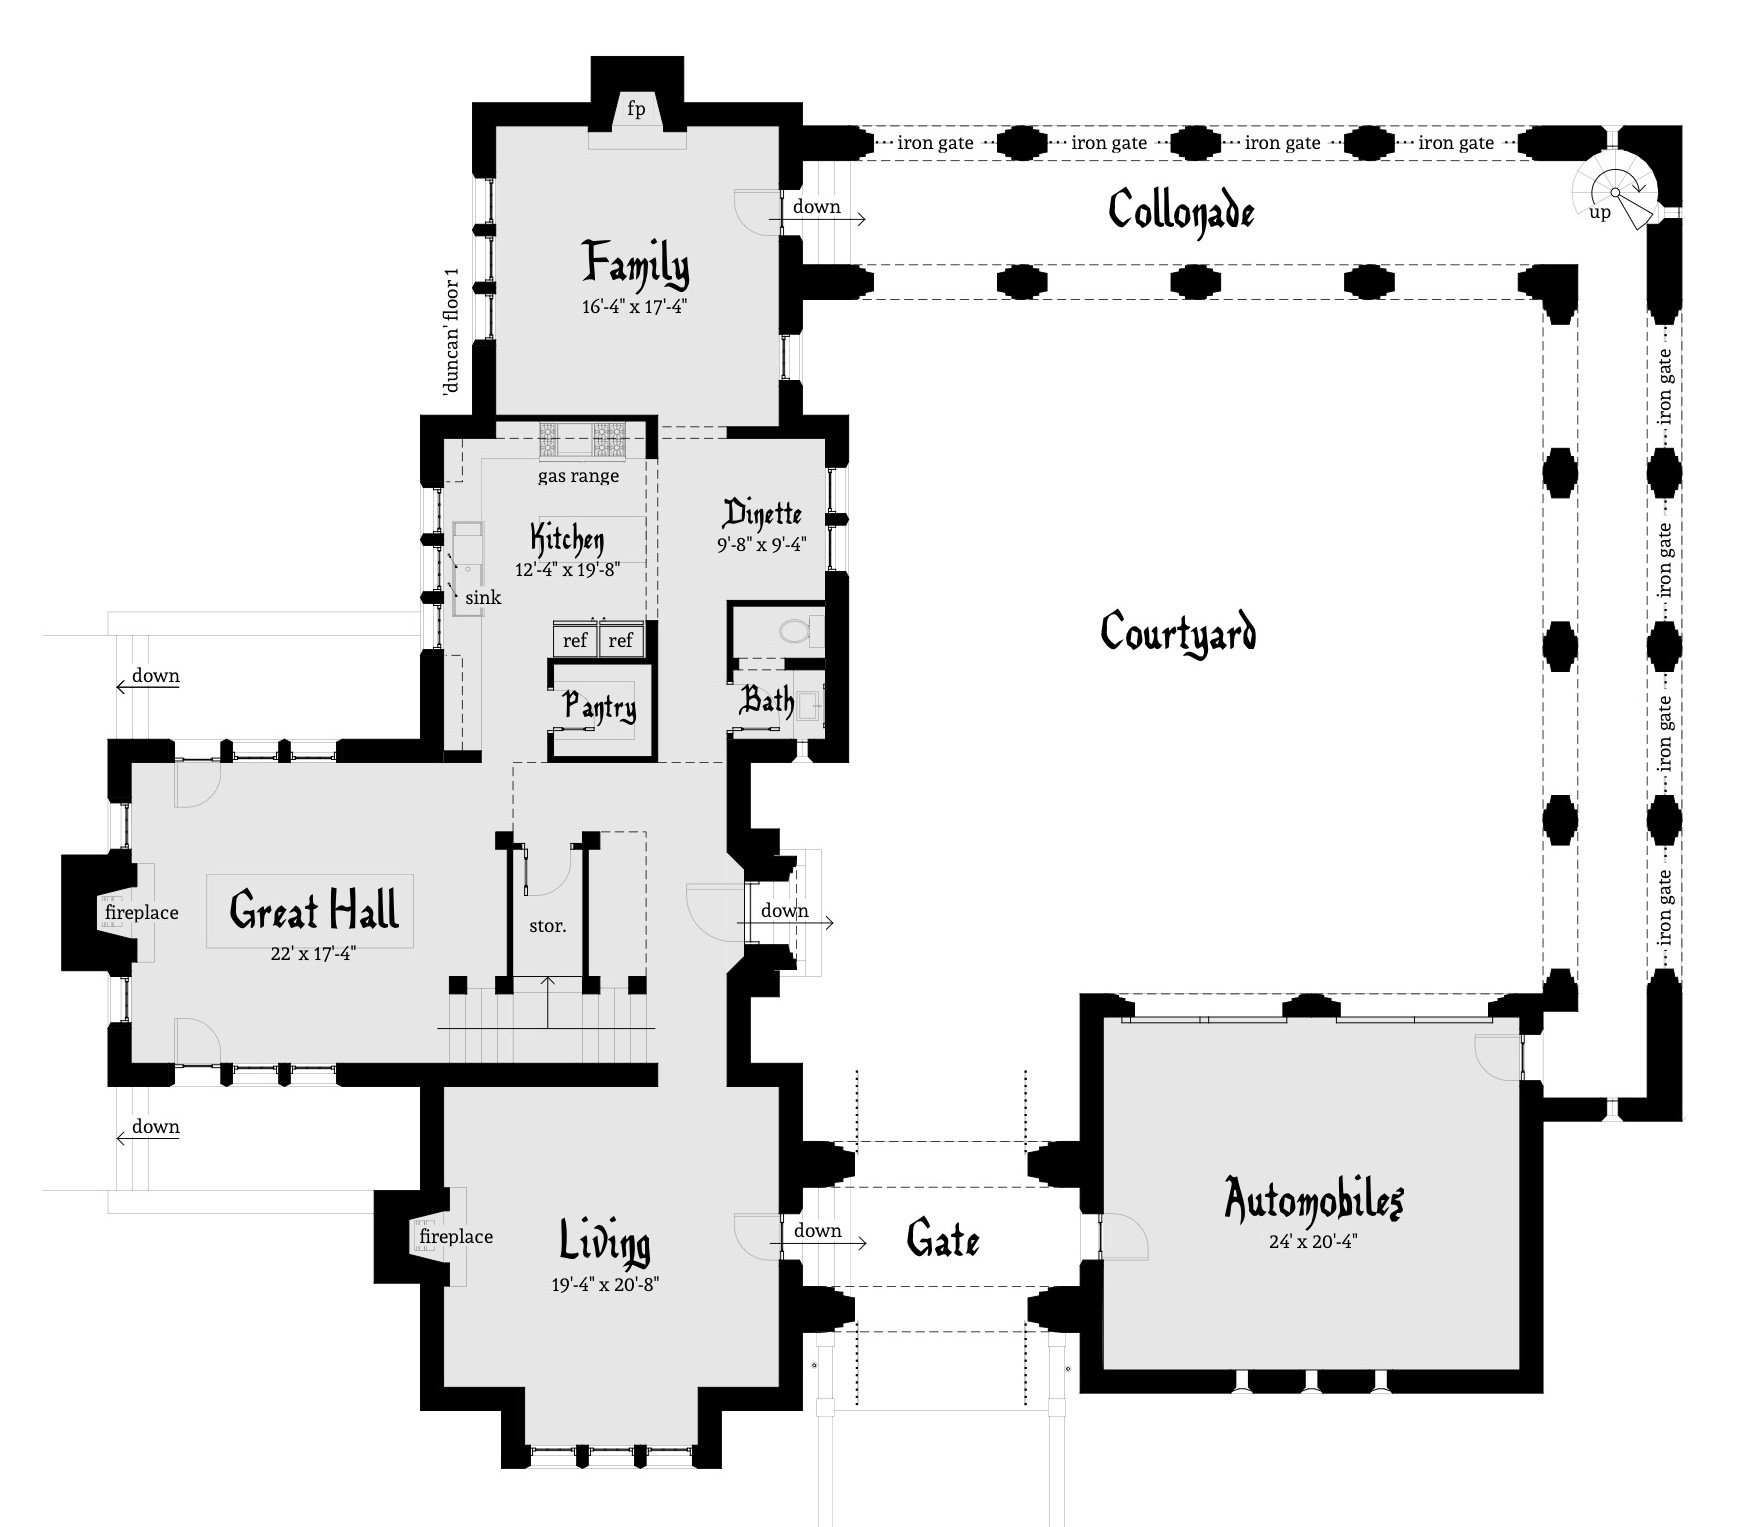 Courtyard Castle Plan with 3 Bedrooms Duncan Castle Plan